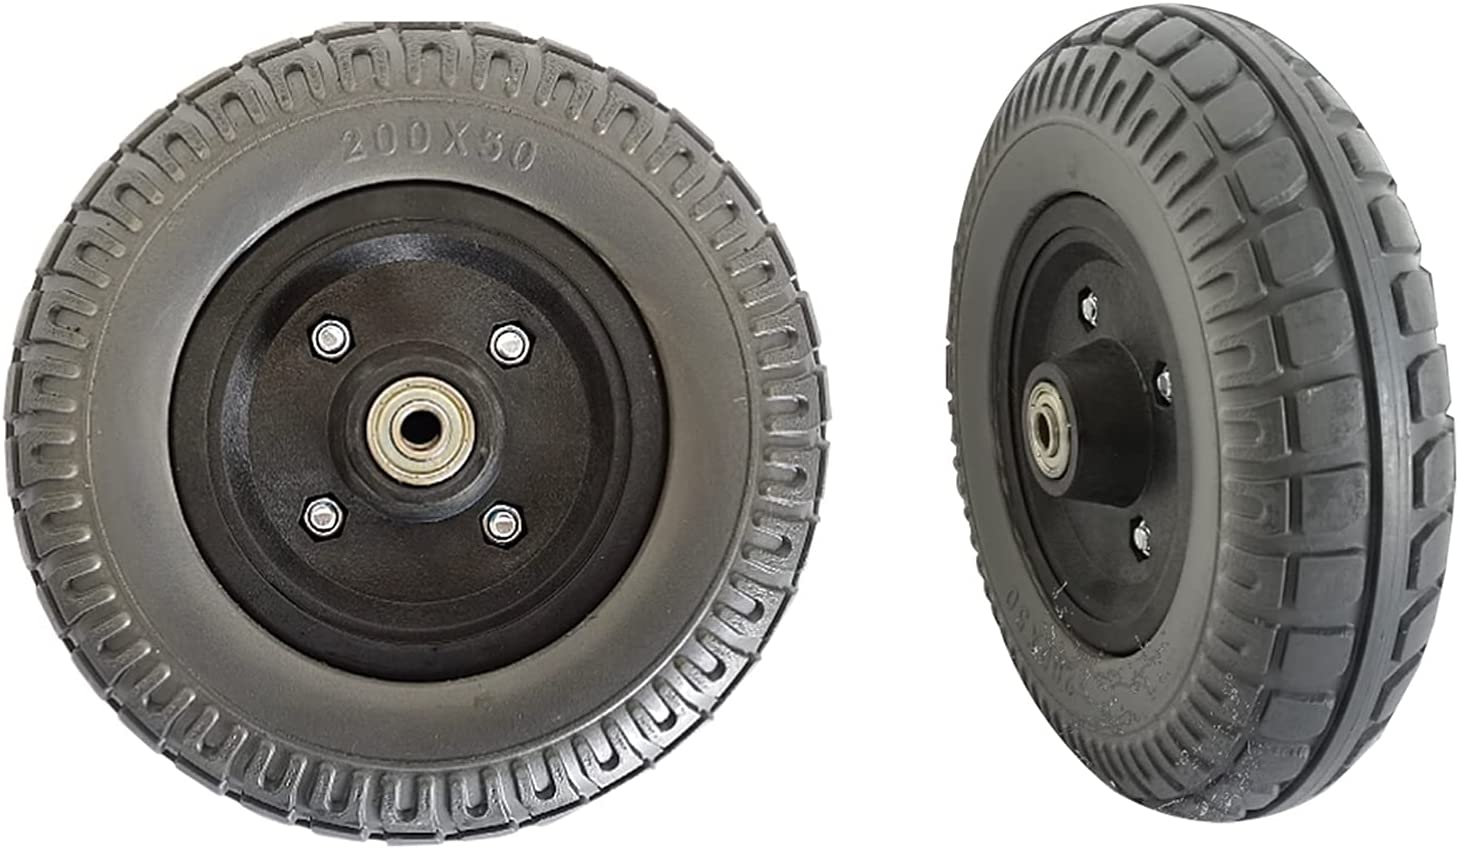 8-inch Electric Wheelchair Tires Rubber New item Wear-Resistant Challenge the lowest price of Japan Solid Ti